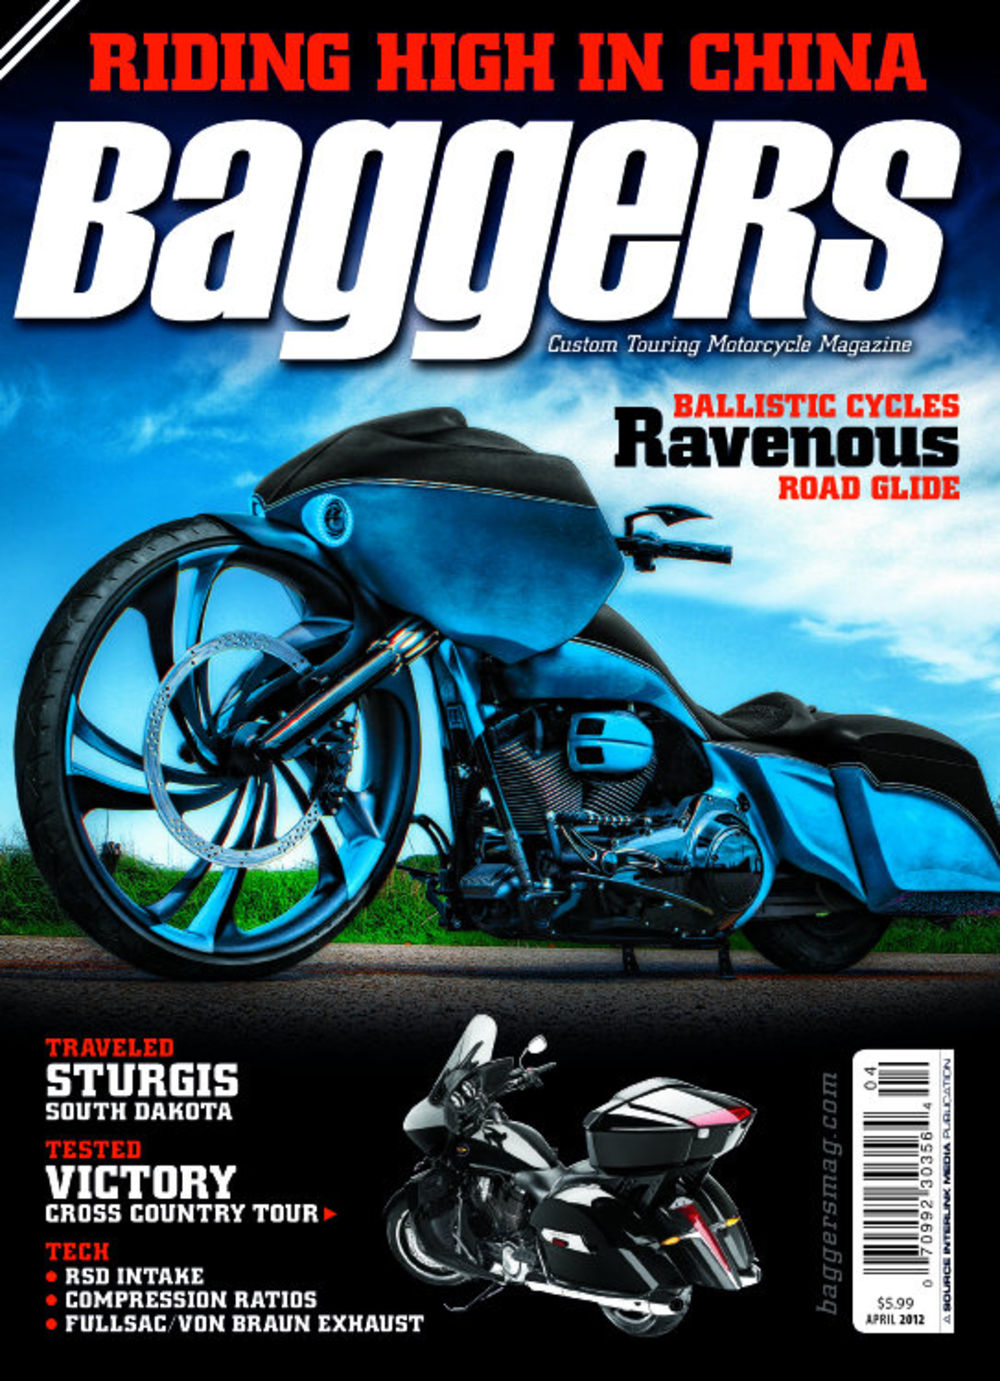 1204-hrbp-01-o+baggers-magazine-april-2012+cover.jpg